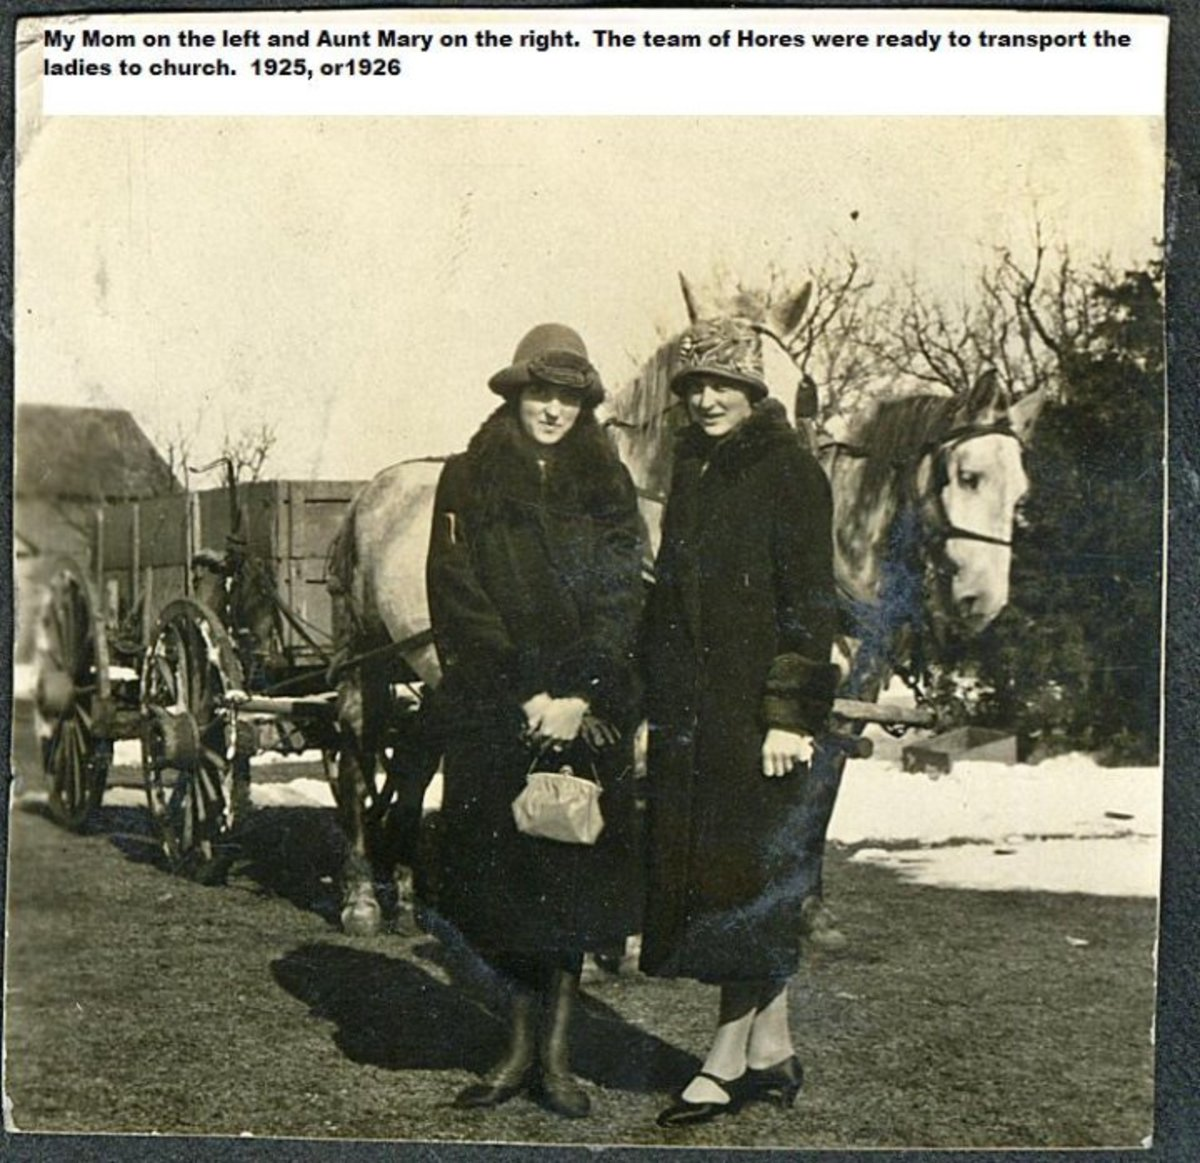 Monte Manka's Mother and Aunt Mary in the Late 1920s